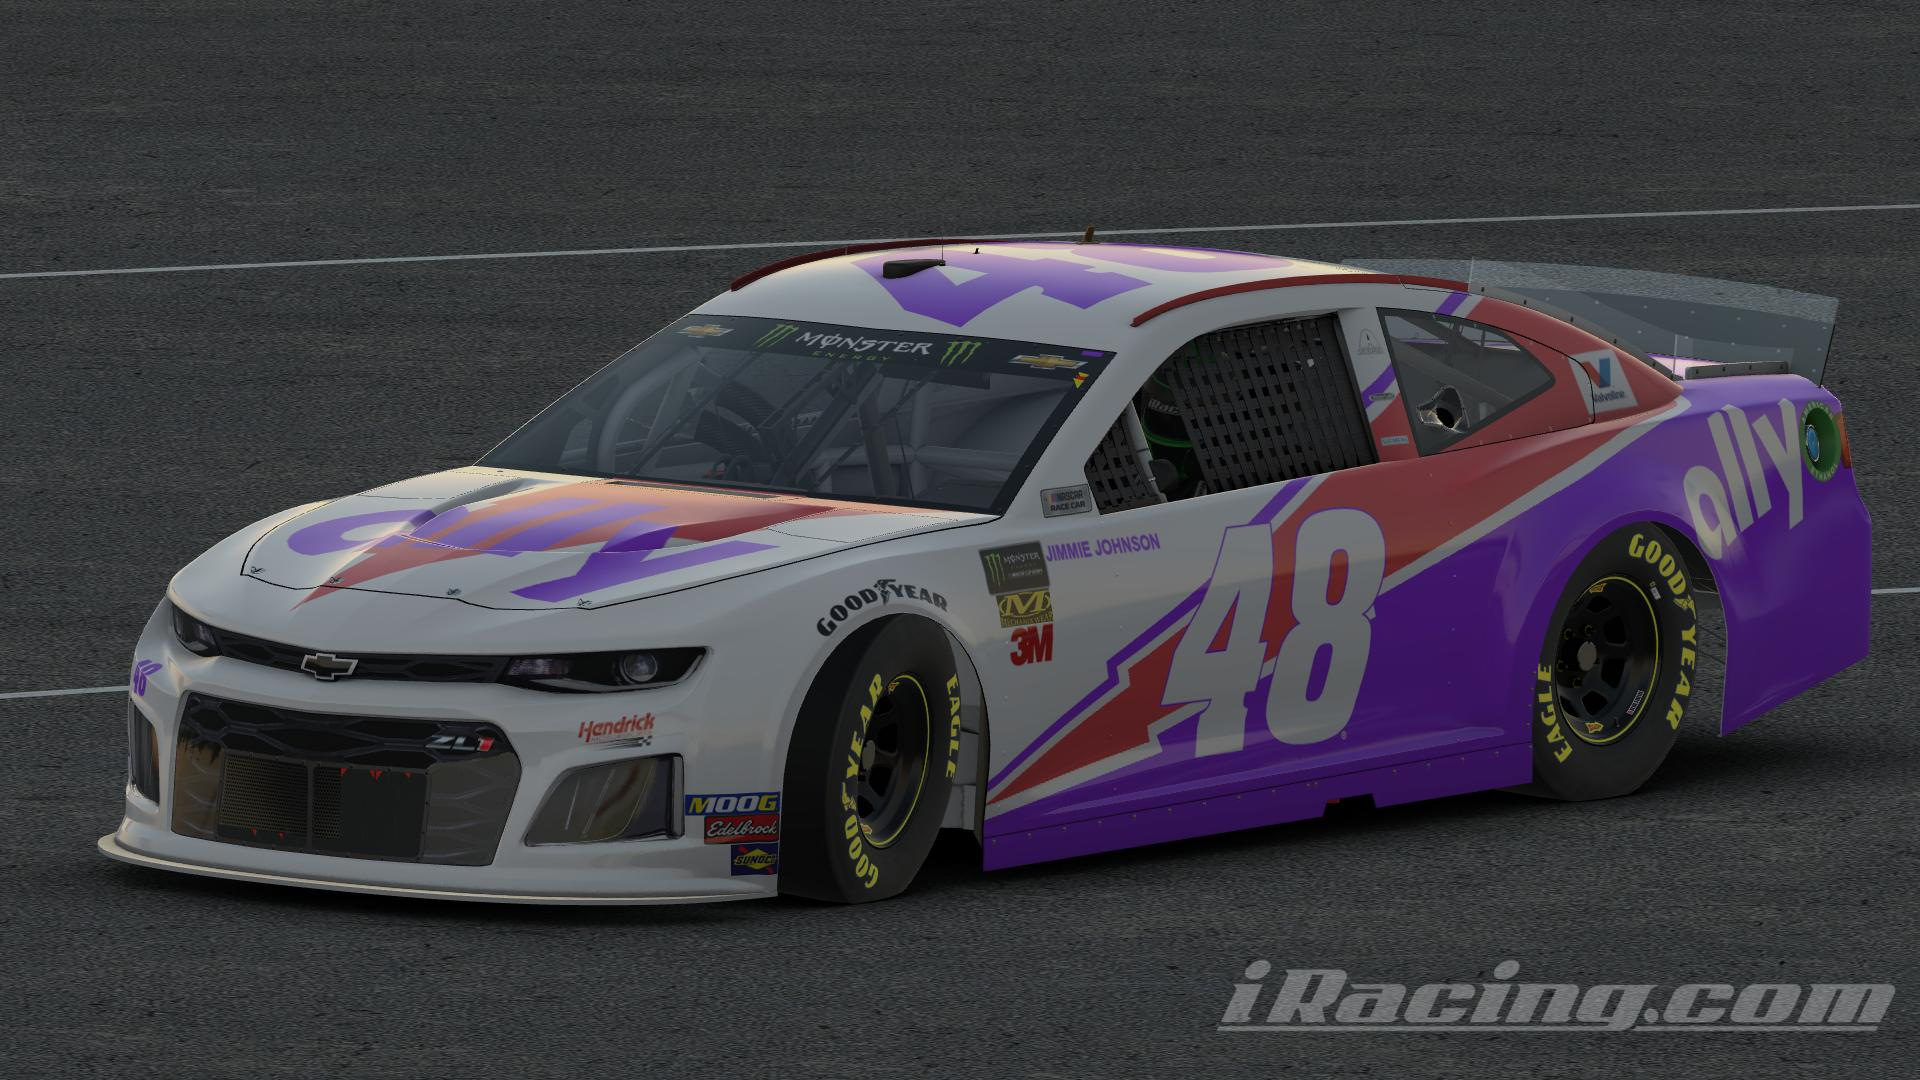 Preview of (Broke)Jimmie Johnson Ally Throwback by Austin G Johnson